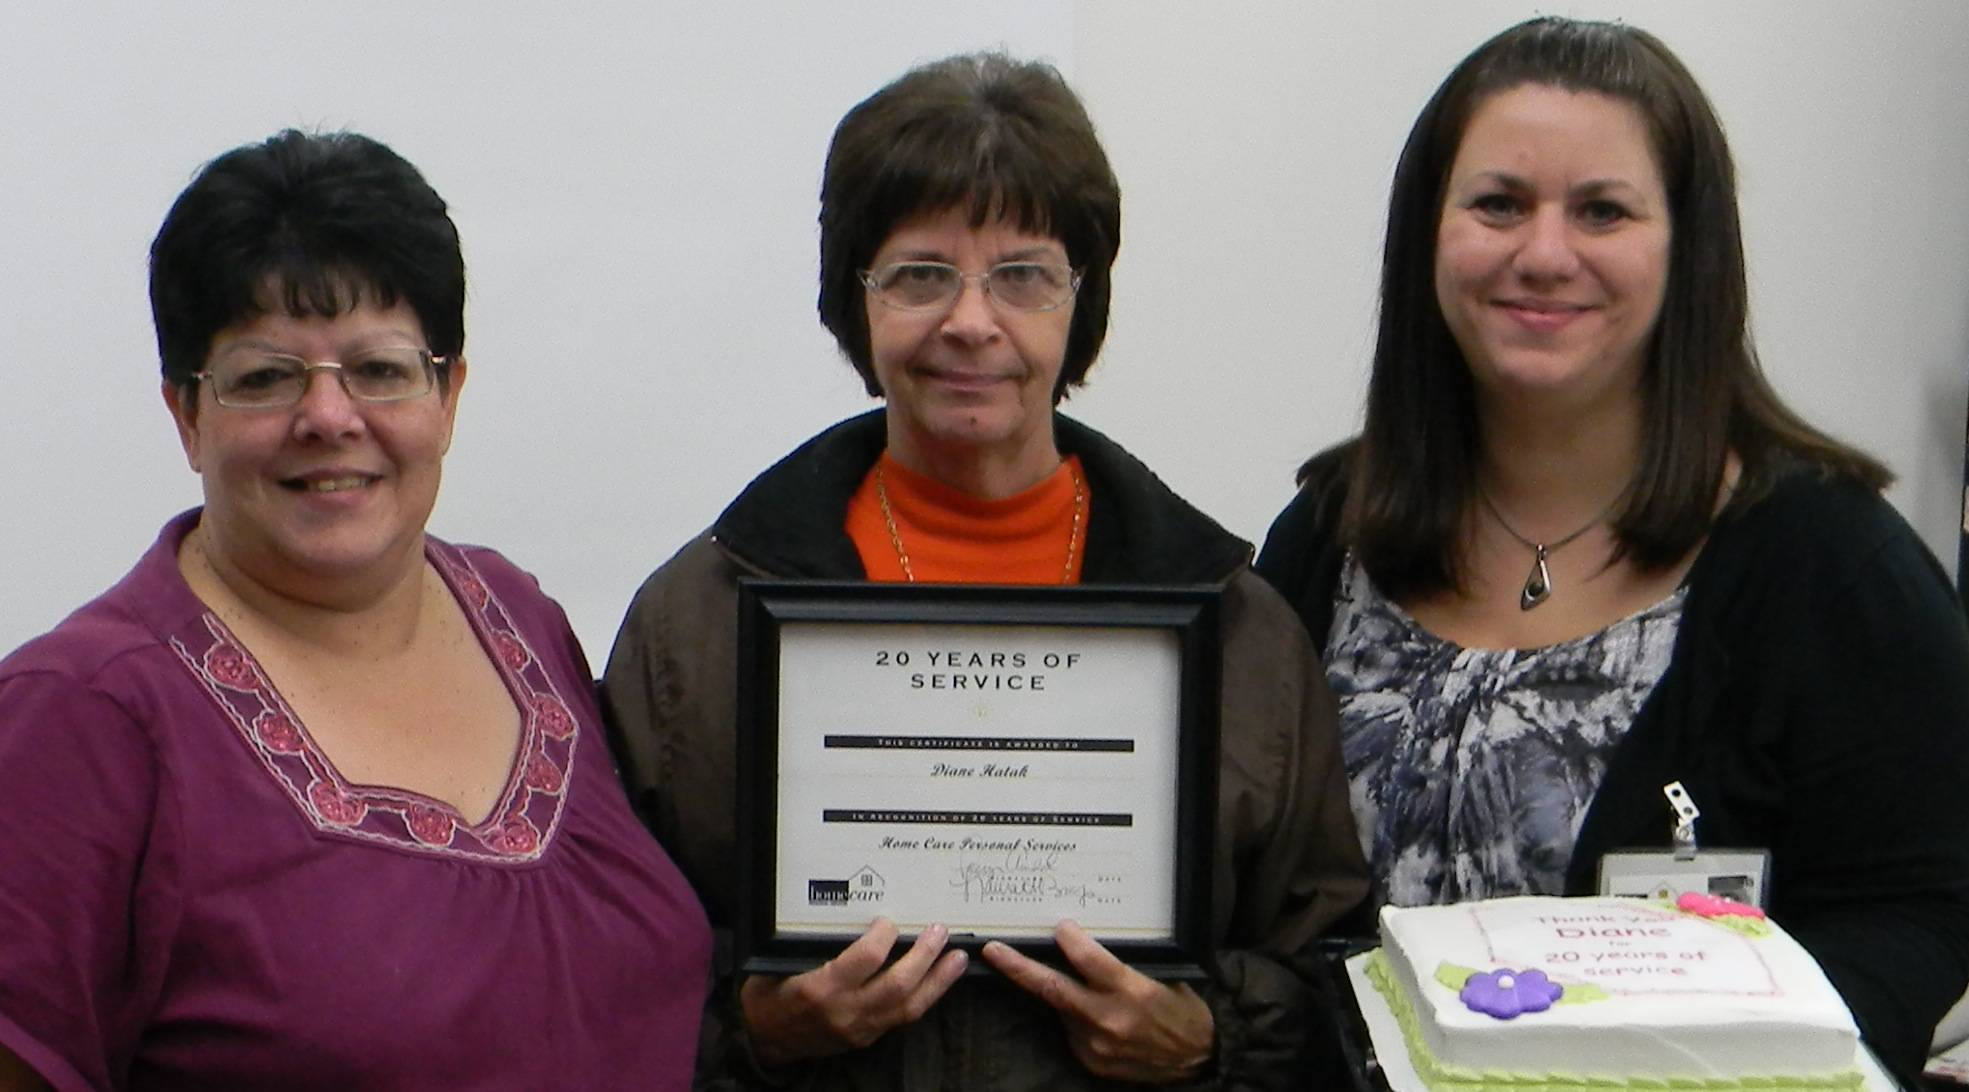 Cheryl Battista, Scheduling Supervisor, and Heather Caldwell, Scheduling Supervisor, present Diane Hatak with a plaque commending her 20 years of service to Home Care Personal Services, Inc.